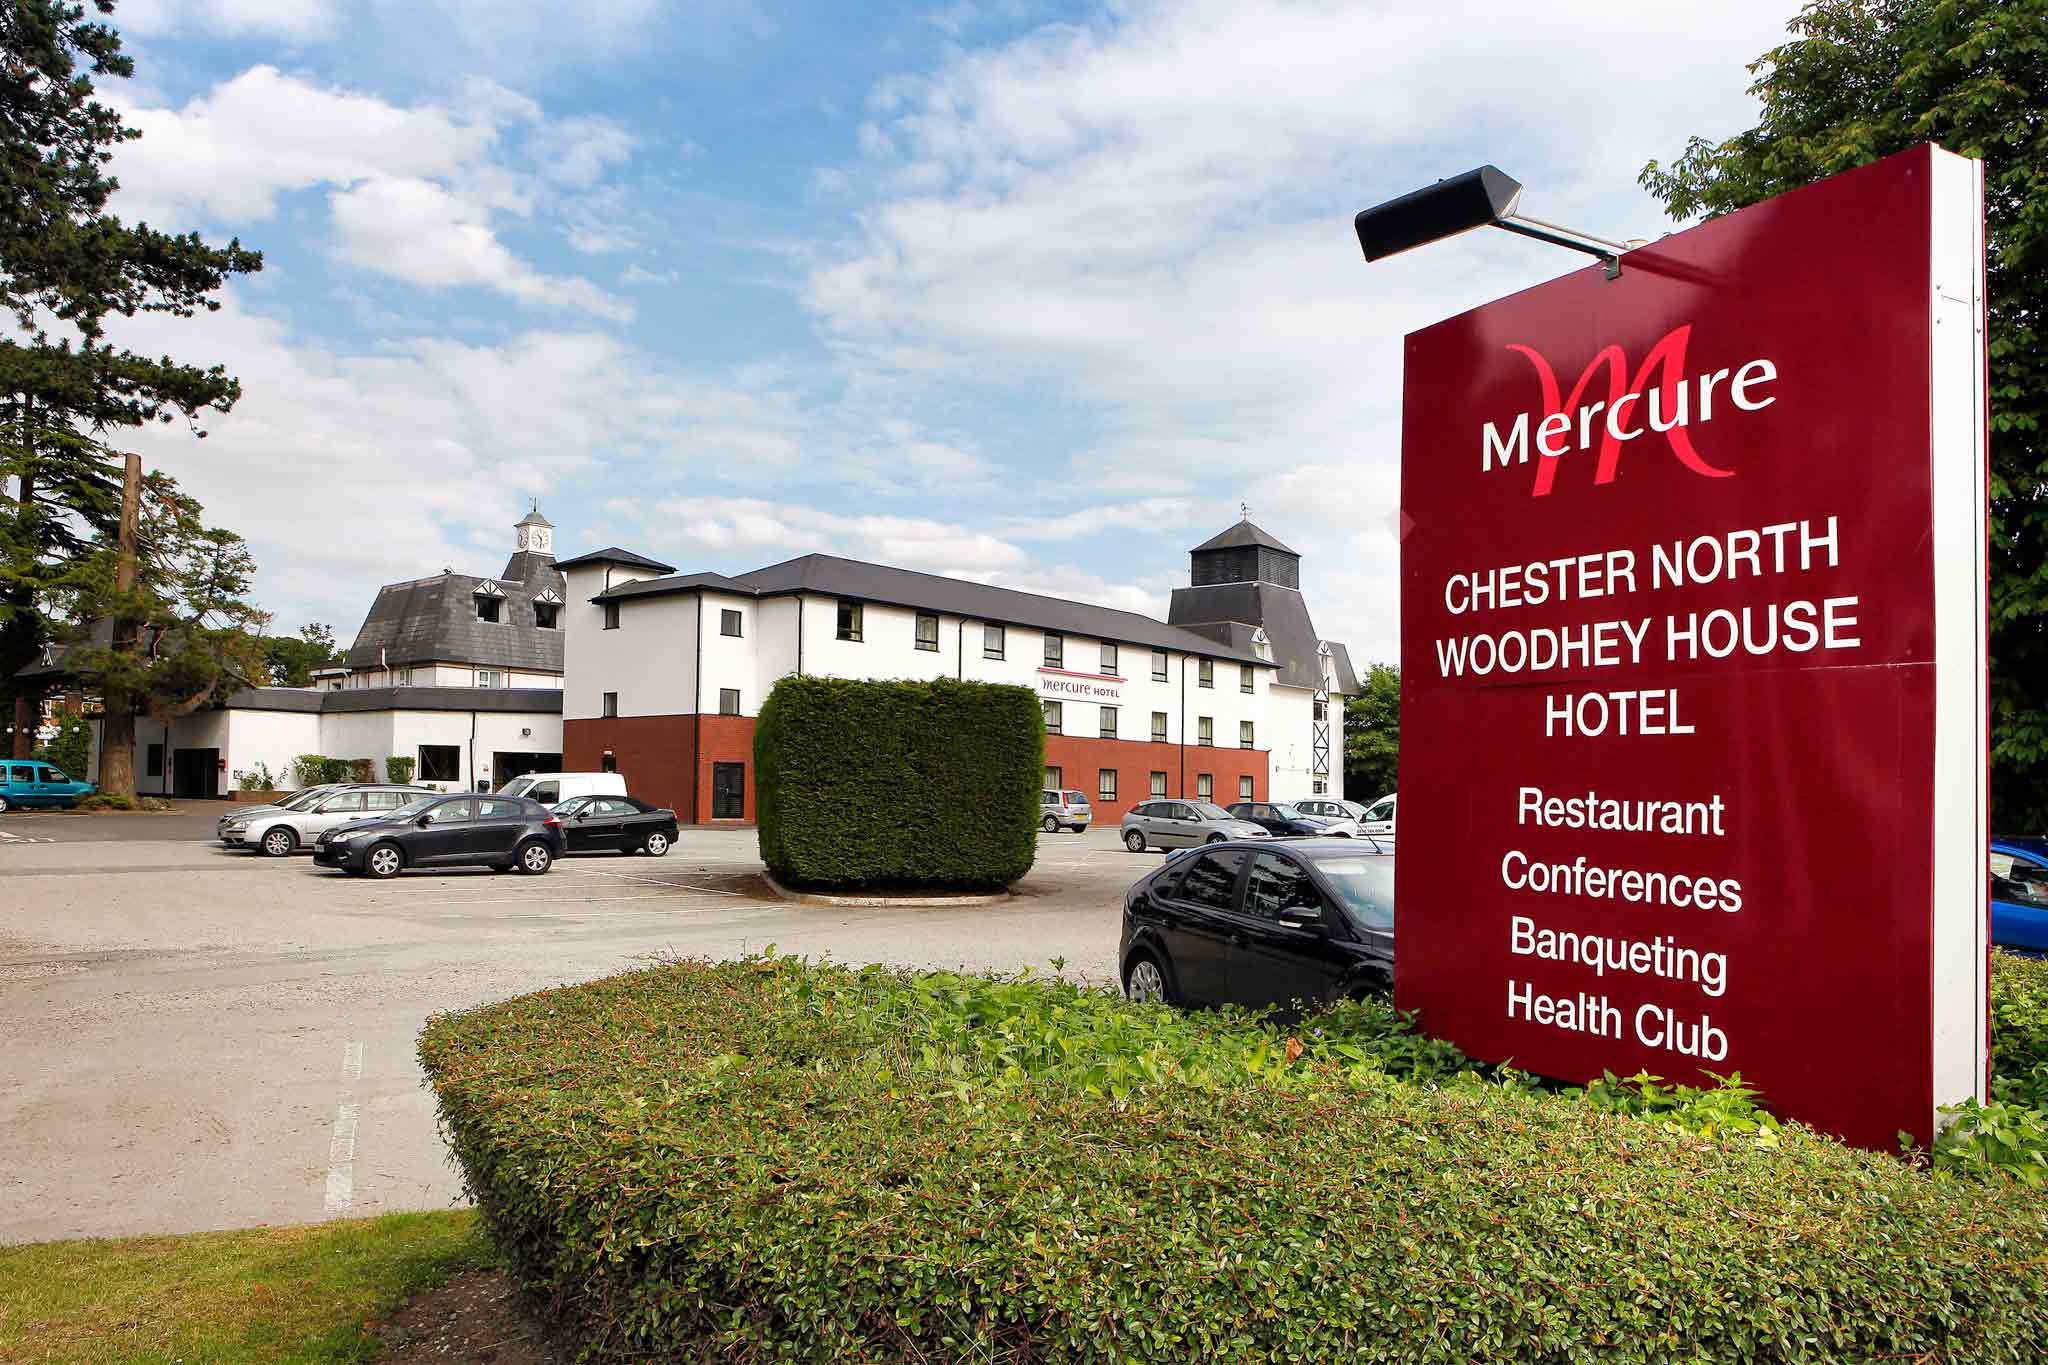 Hotell – Mercure Chester North Woodhey House Hotel